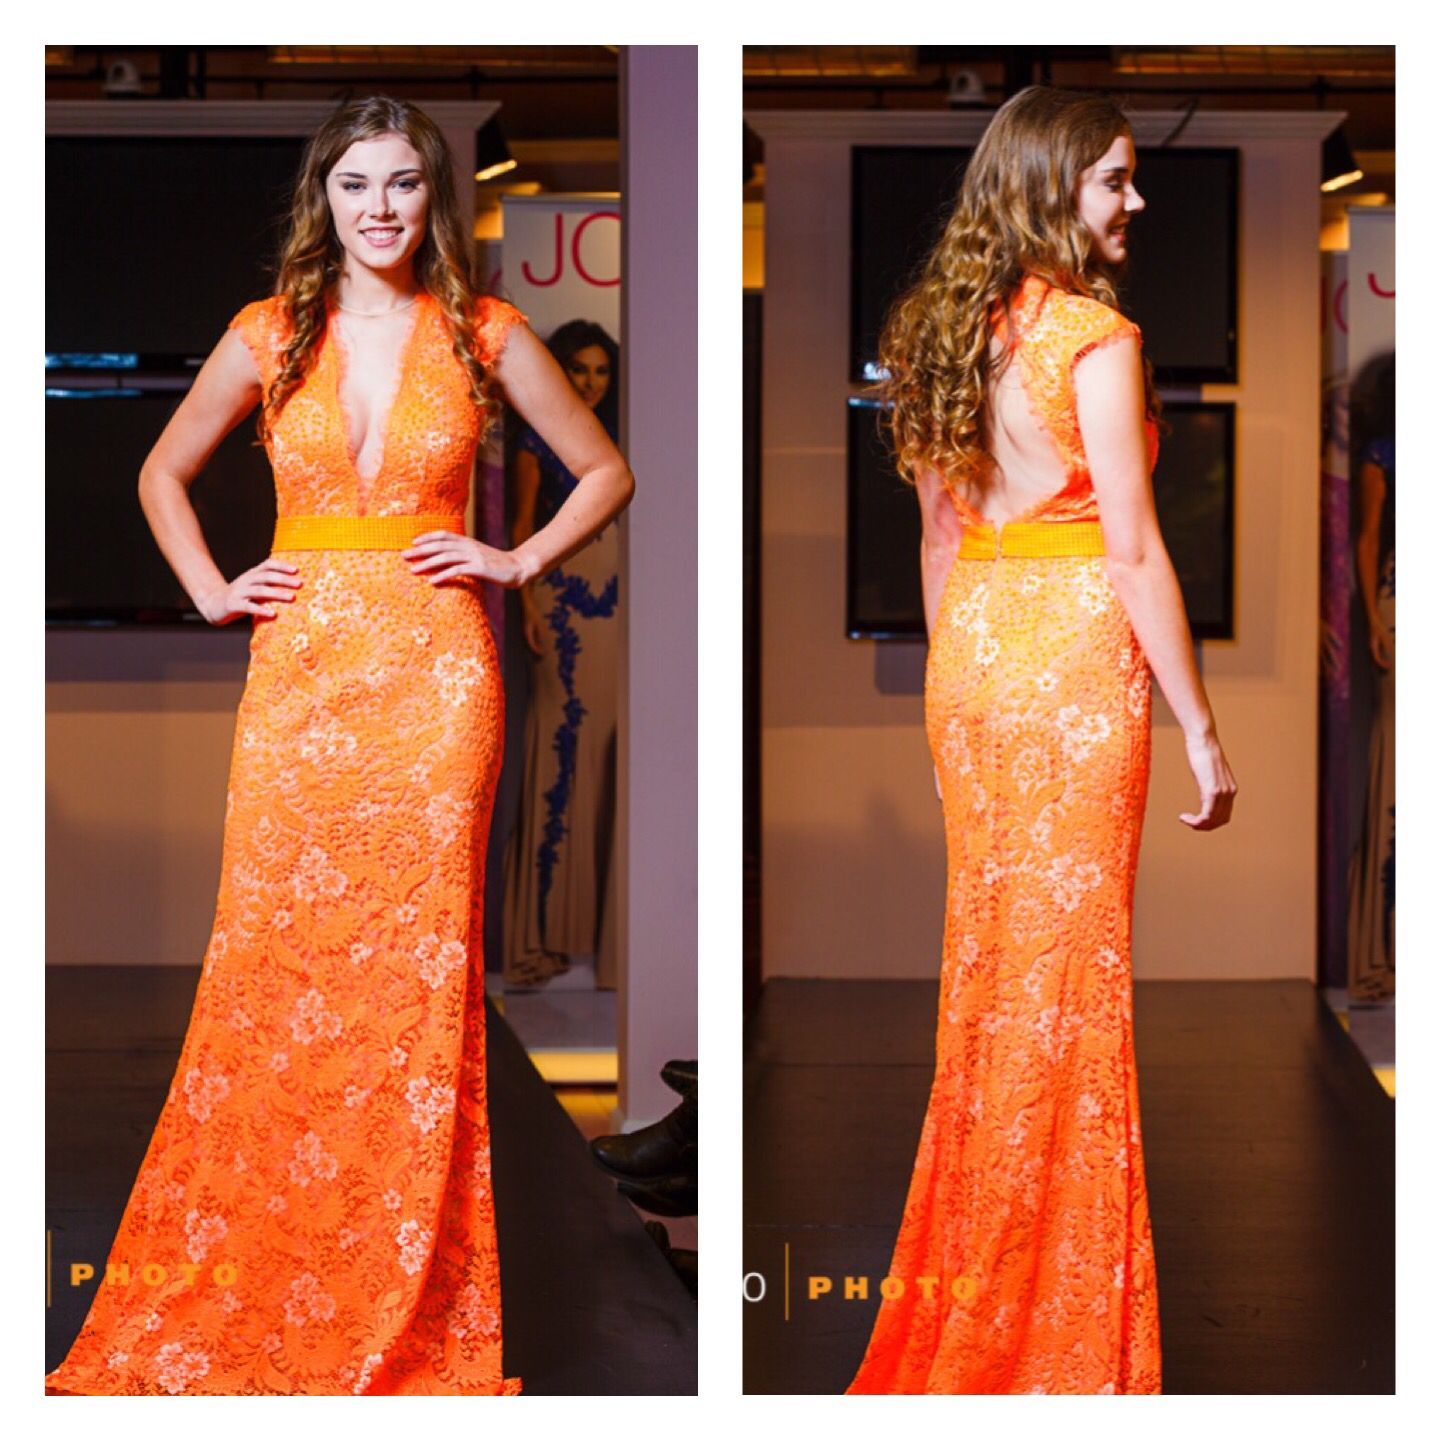 Alexandra\'s boutique has the most unique prom dresses at affordable ...